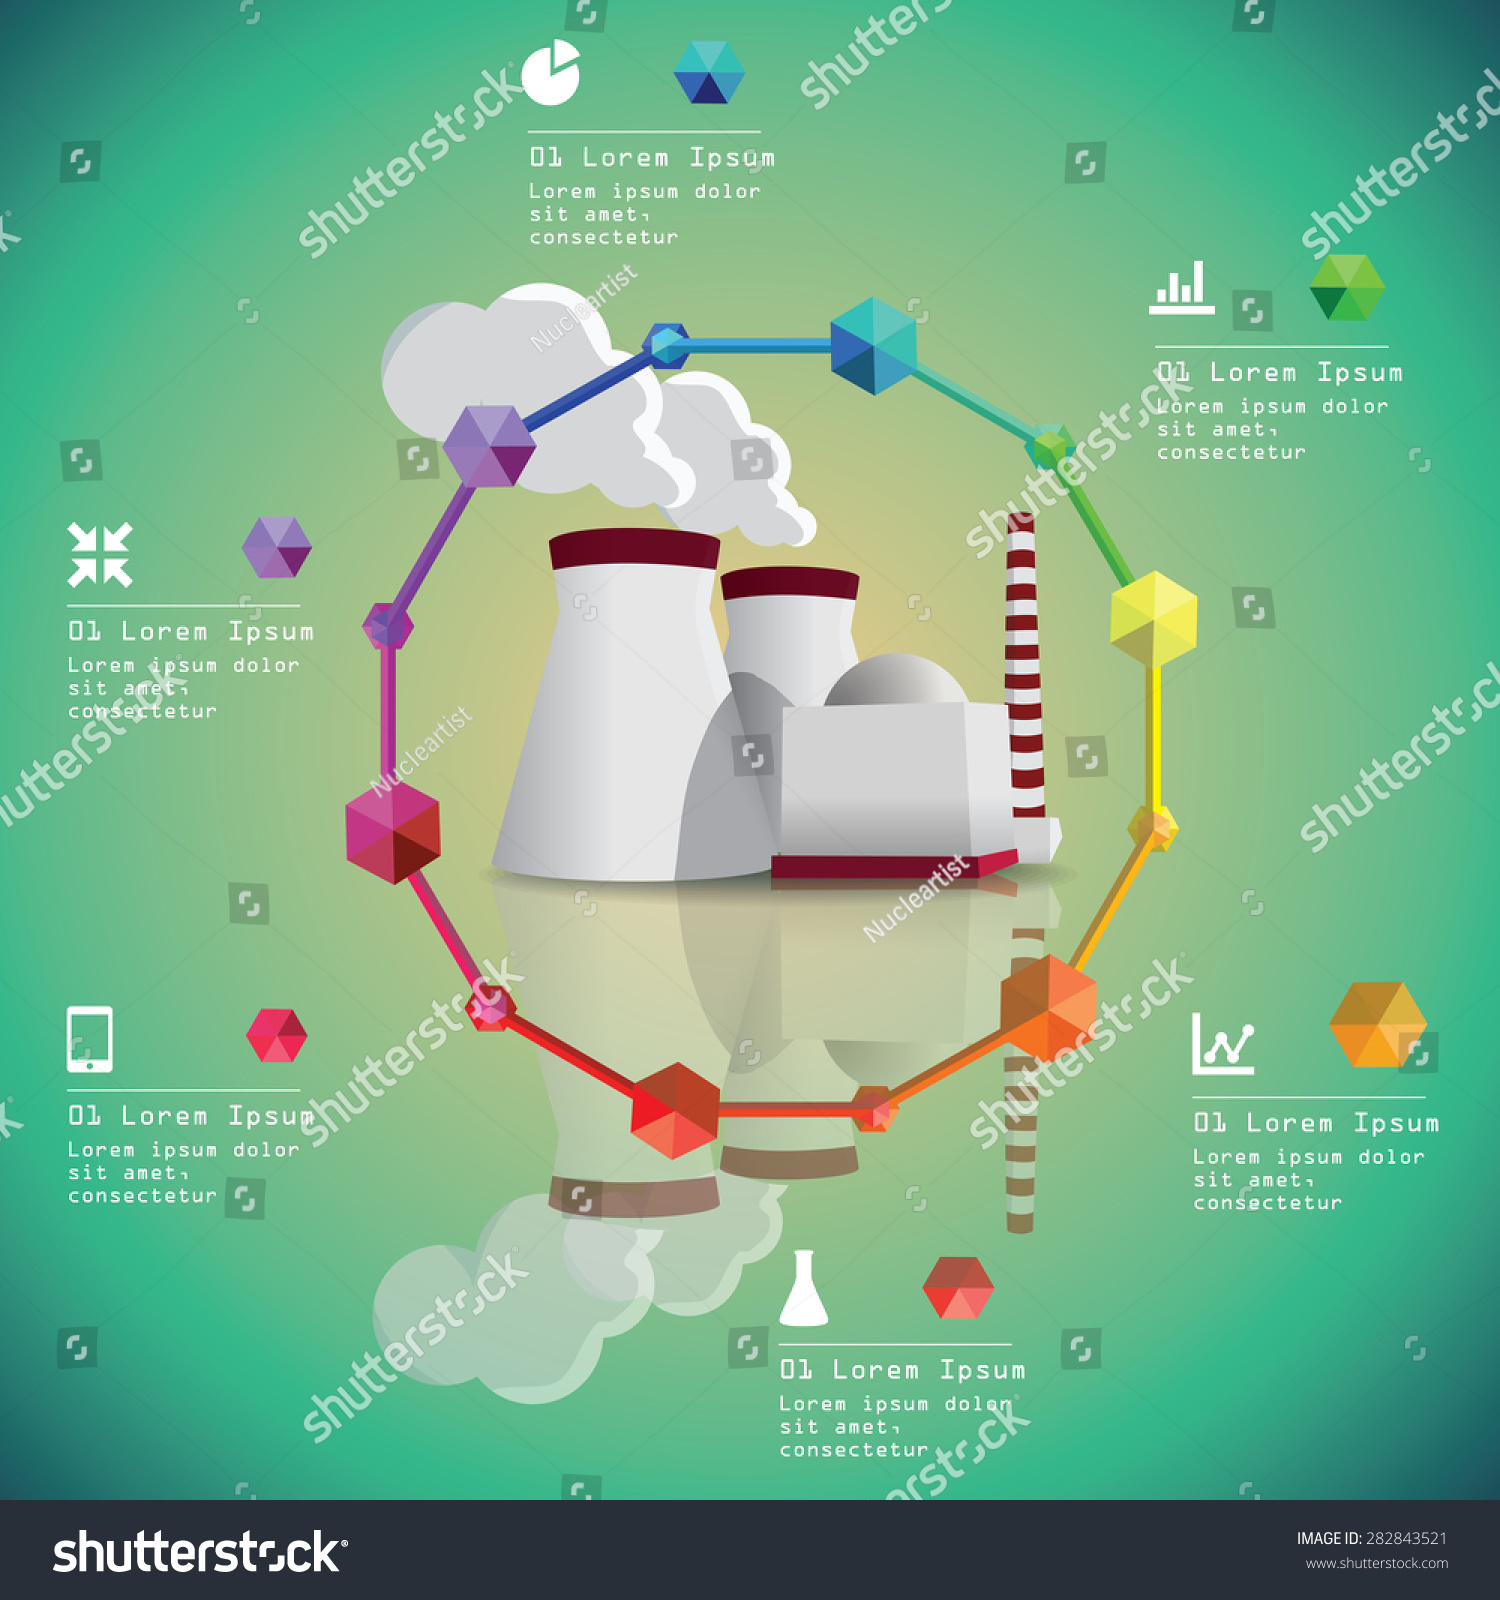 Nuclear Power Plant Vector Image Energy Stock Royalty Free With Diagram Industry Infographic